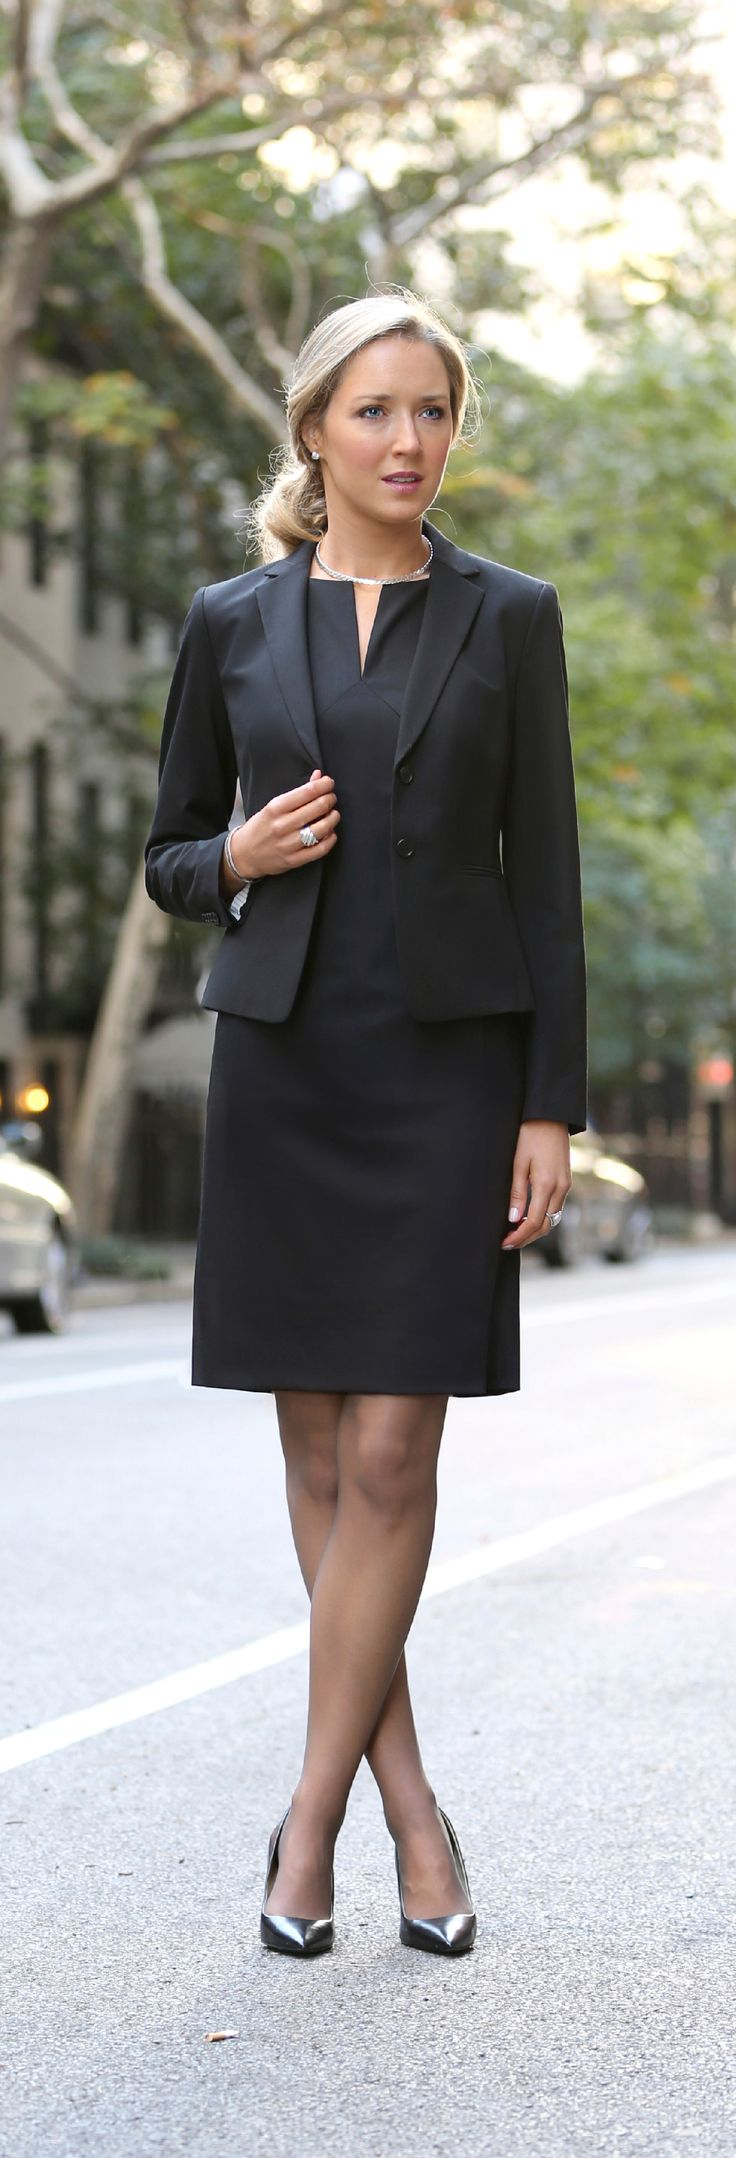 Best 20+ Young professional clothes ideas on Pinterest | Young ...